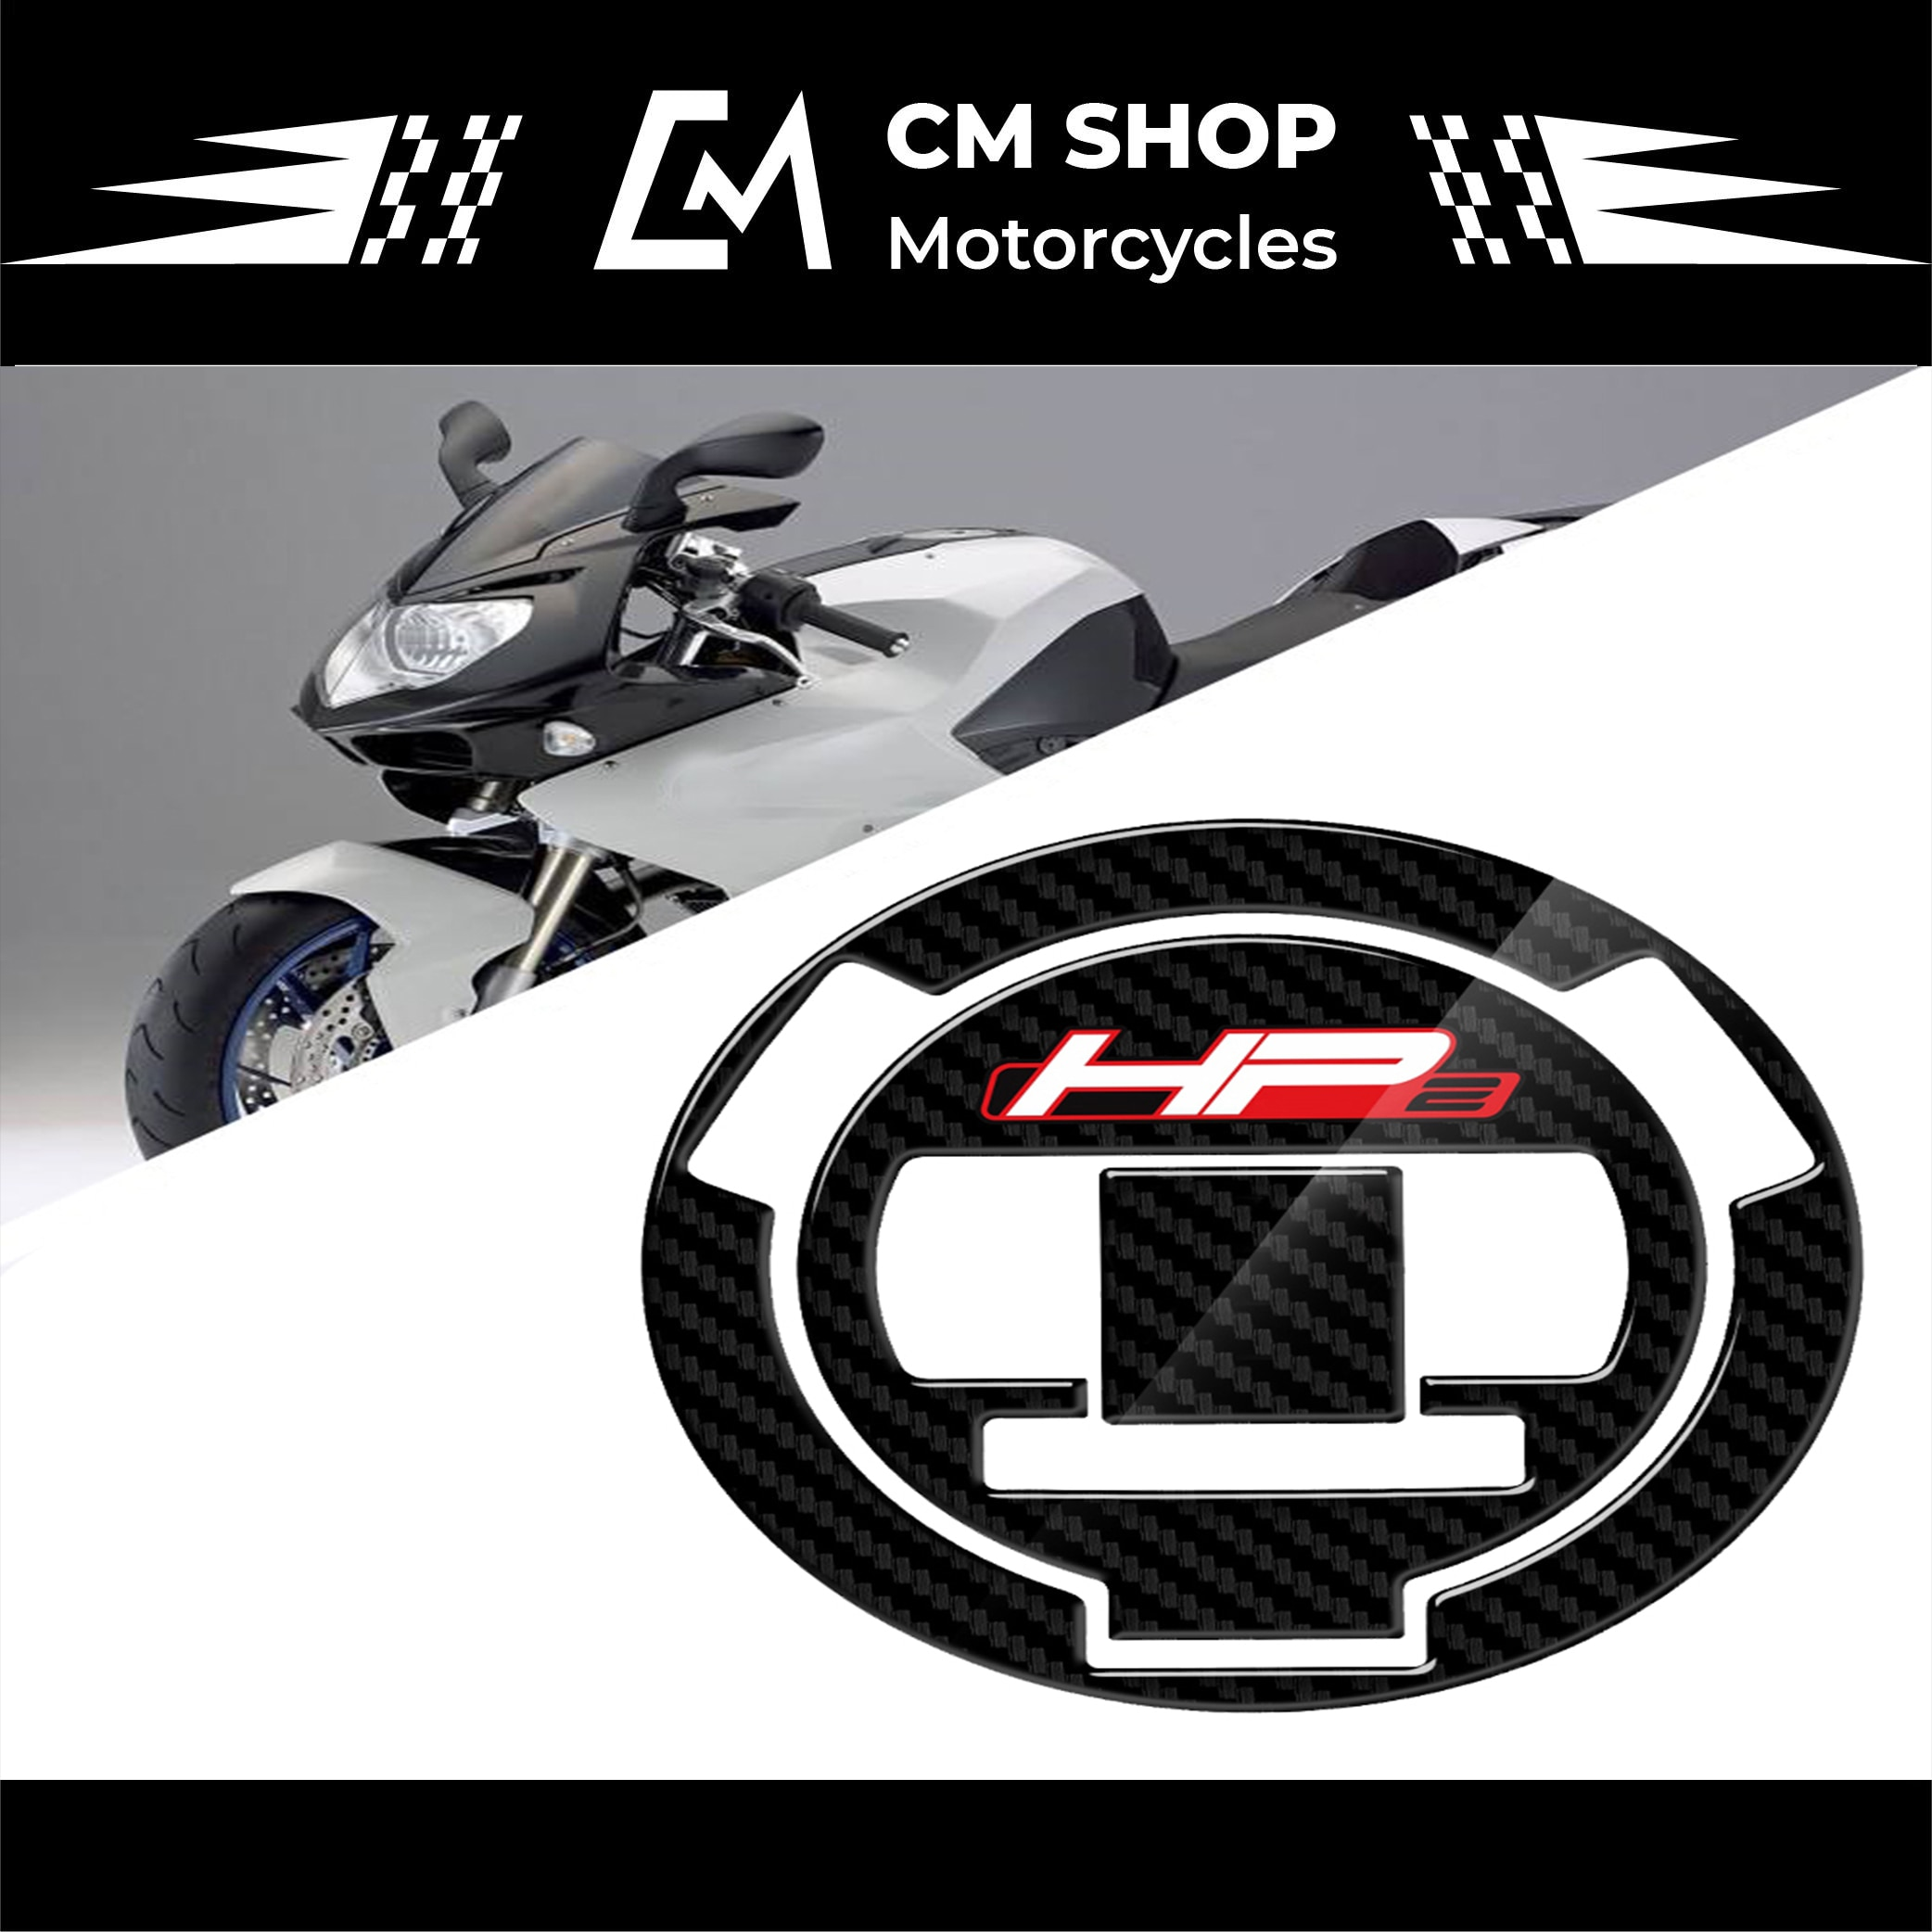 new 3d gel fuel tank side protection sticker fuel tank deca0ls racing kit sticker for bmw f850gs f850 gs 2020 3D Carbon Fiber Look Sticker For BMW HP2 Fuel Tank Cap Cover Pad Motorcycle Fuel Tank Cap